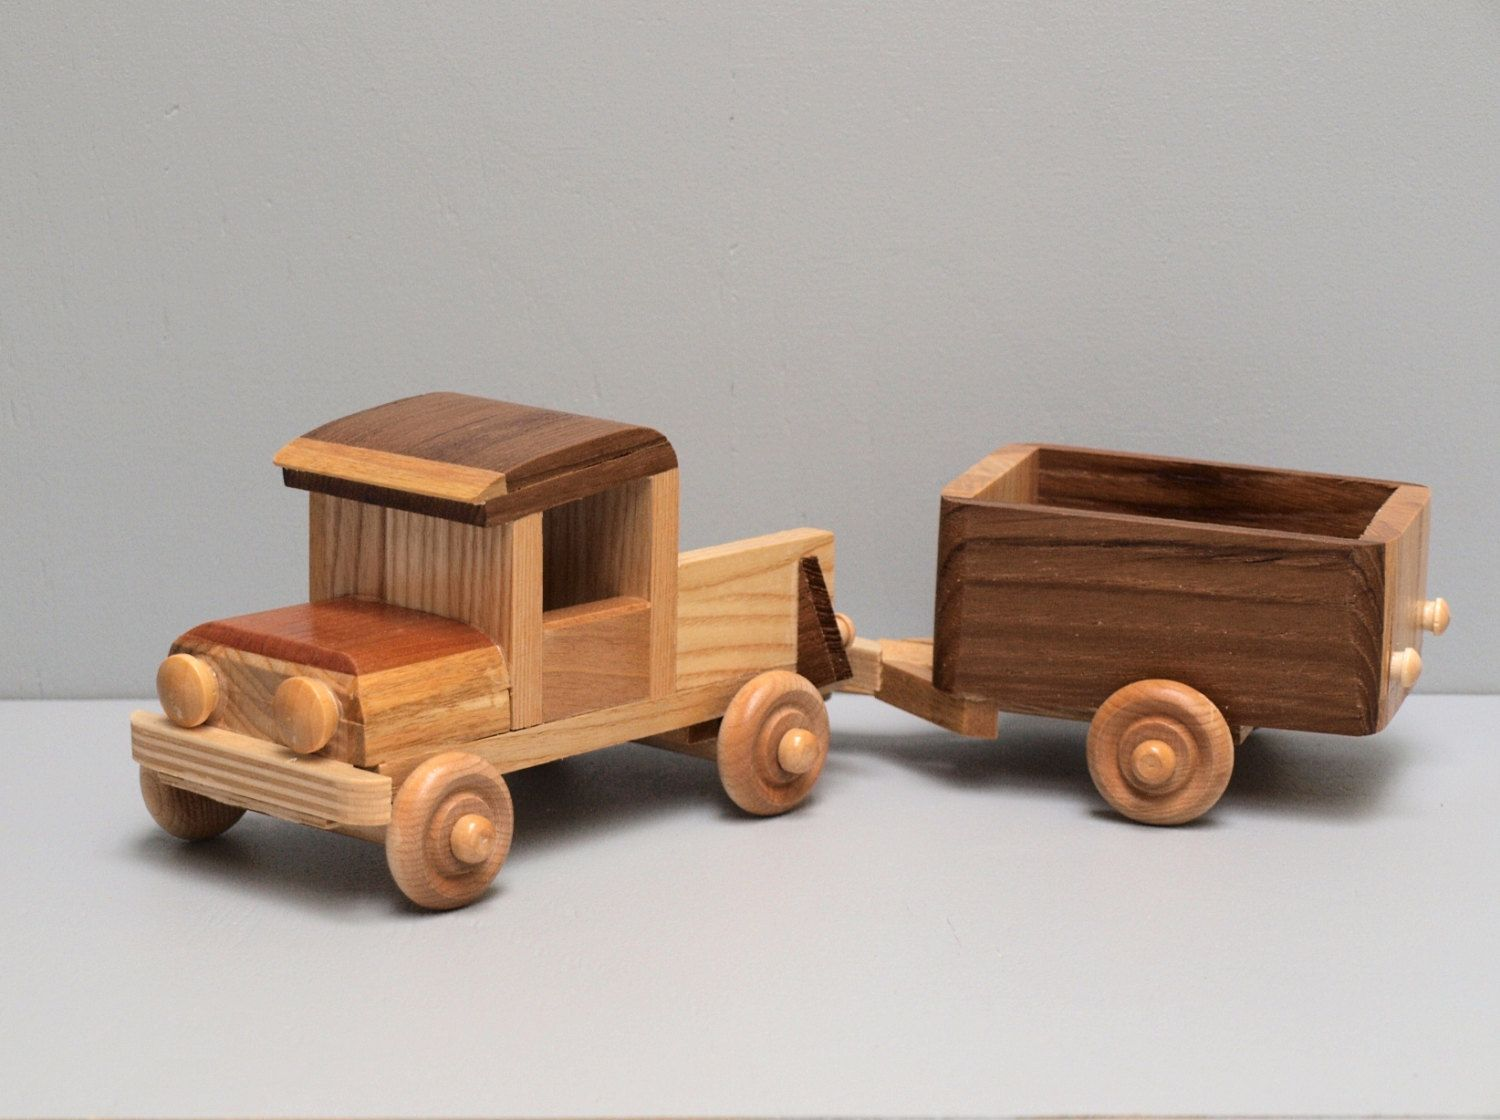 Eco Friendly Wooden Toy Truck With Trailer For Children